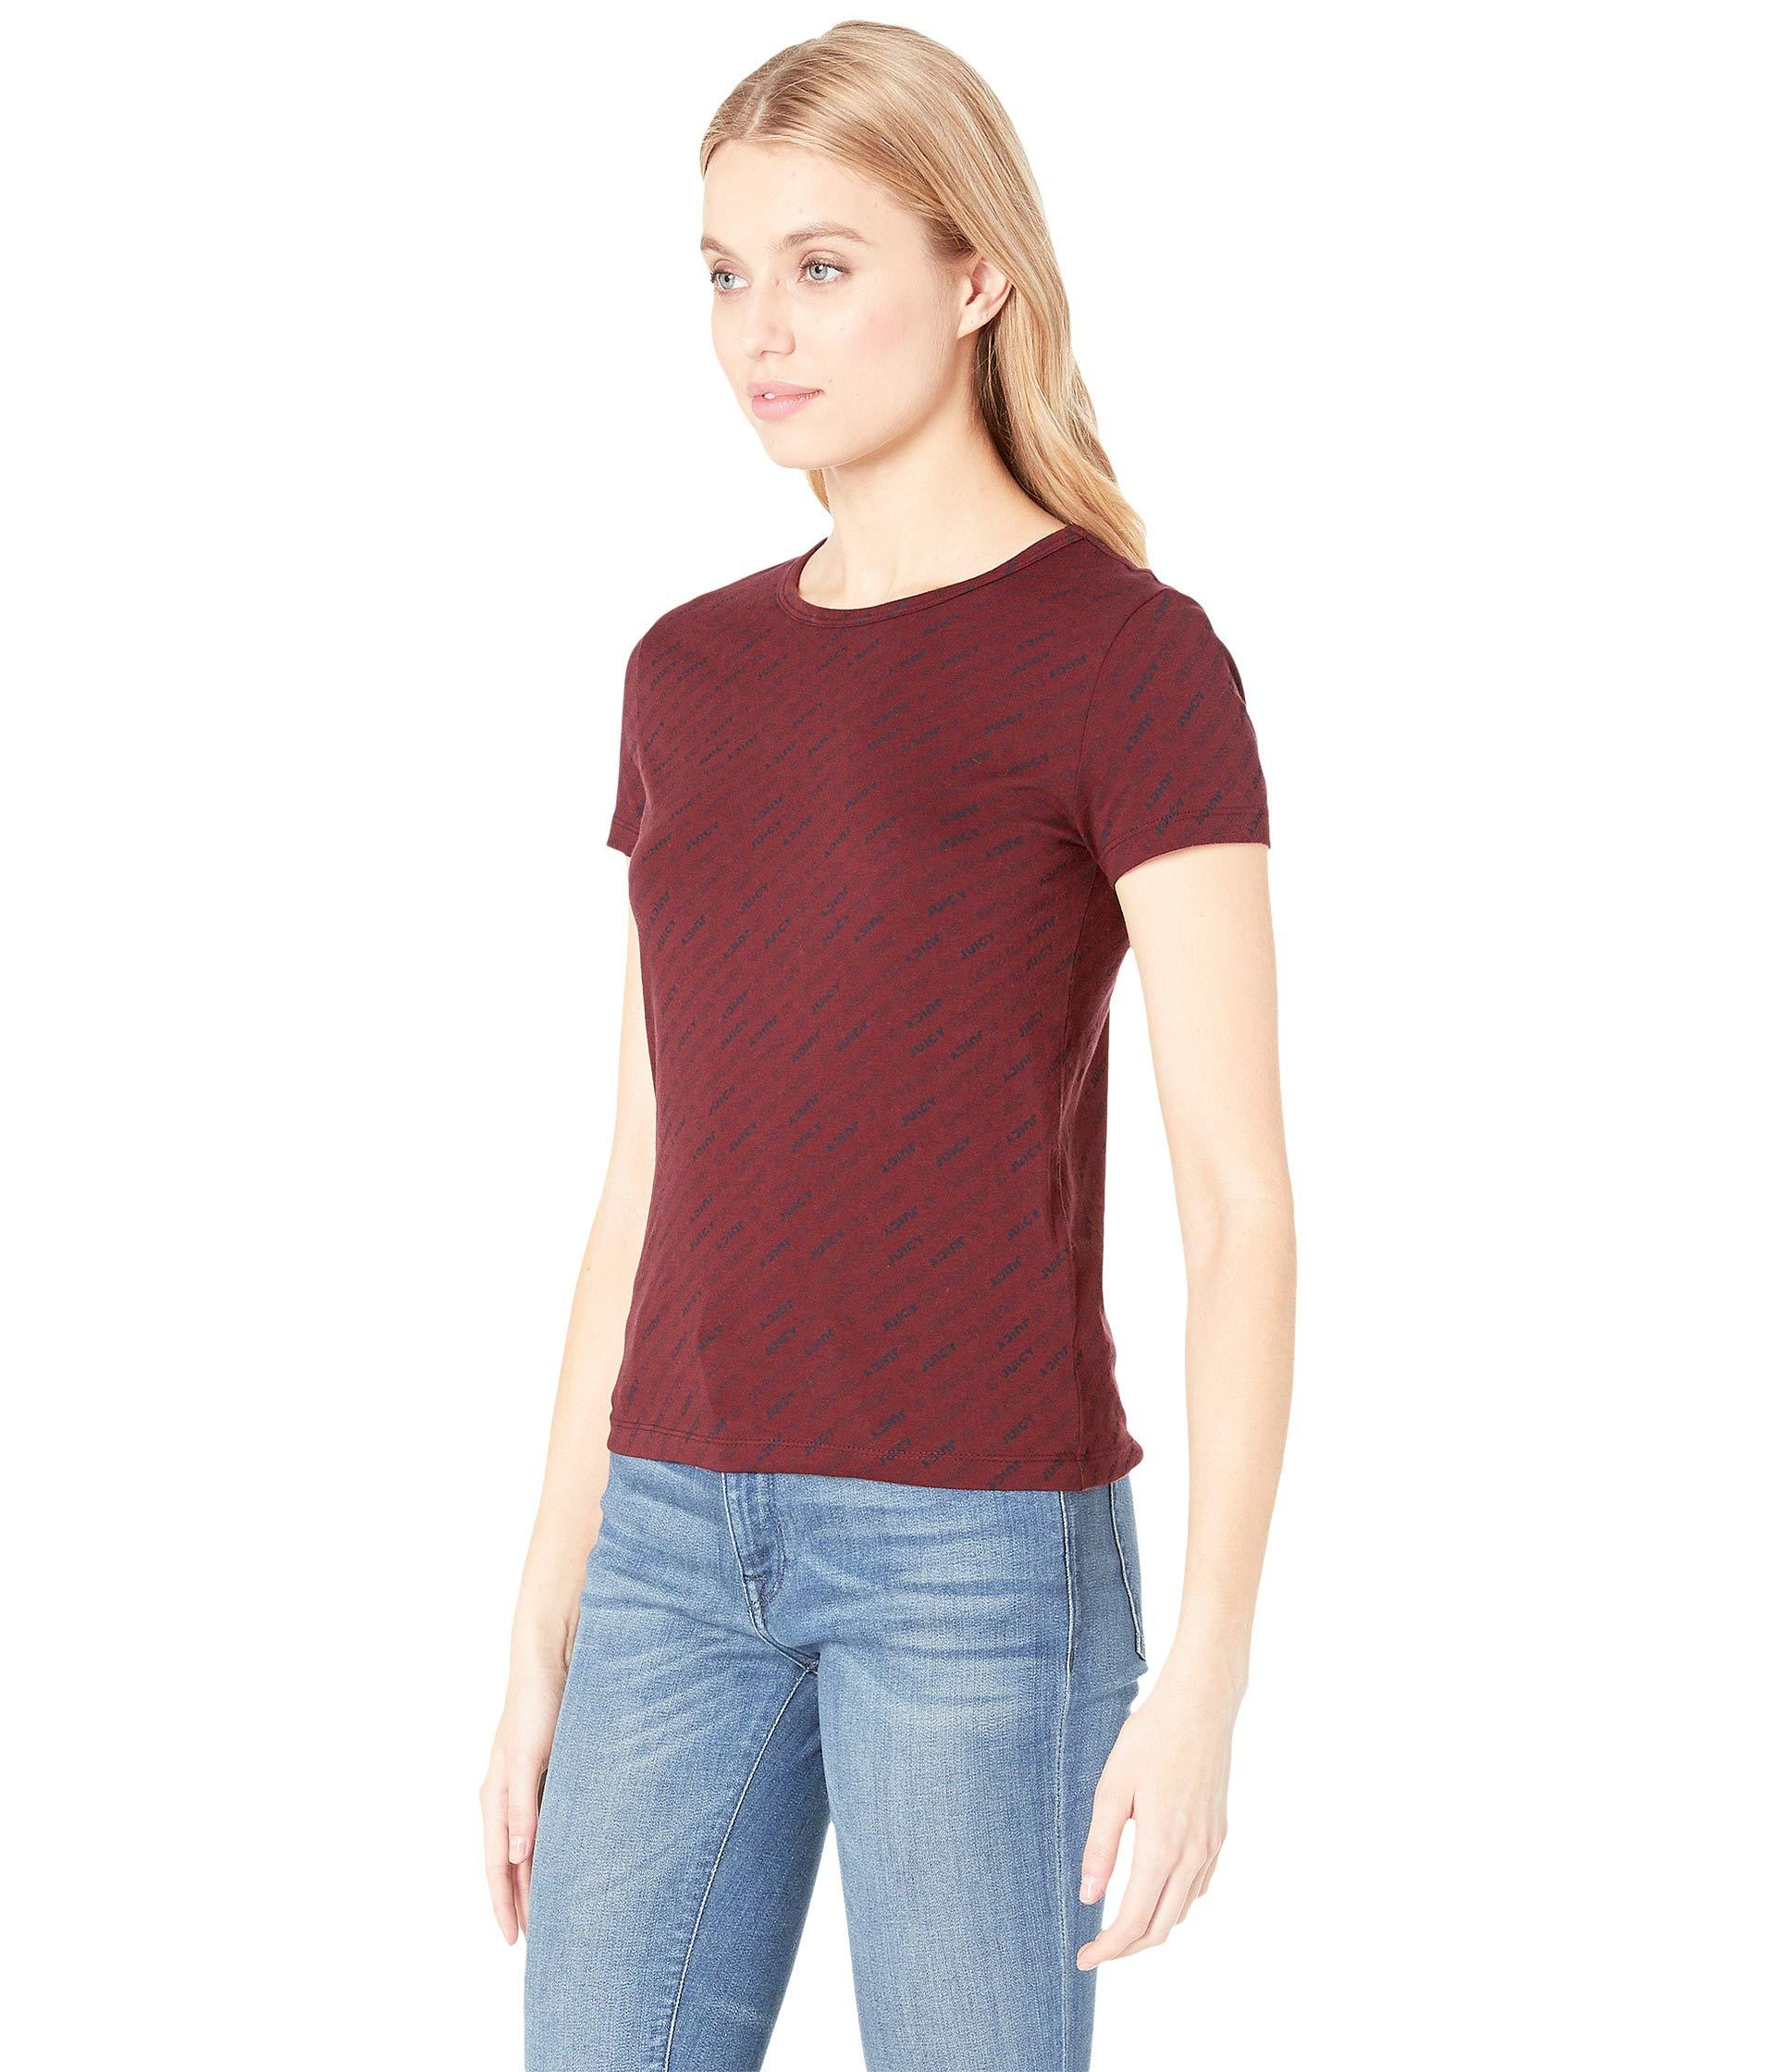 8fe24320 Lyst - Juicy Couture Juicy Repeat Logo Graphic Tee in Red